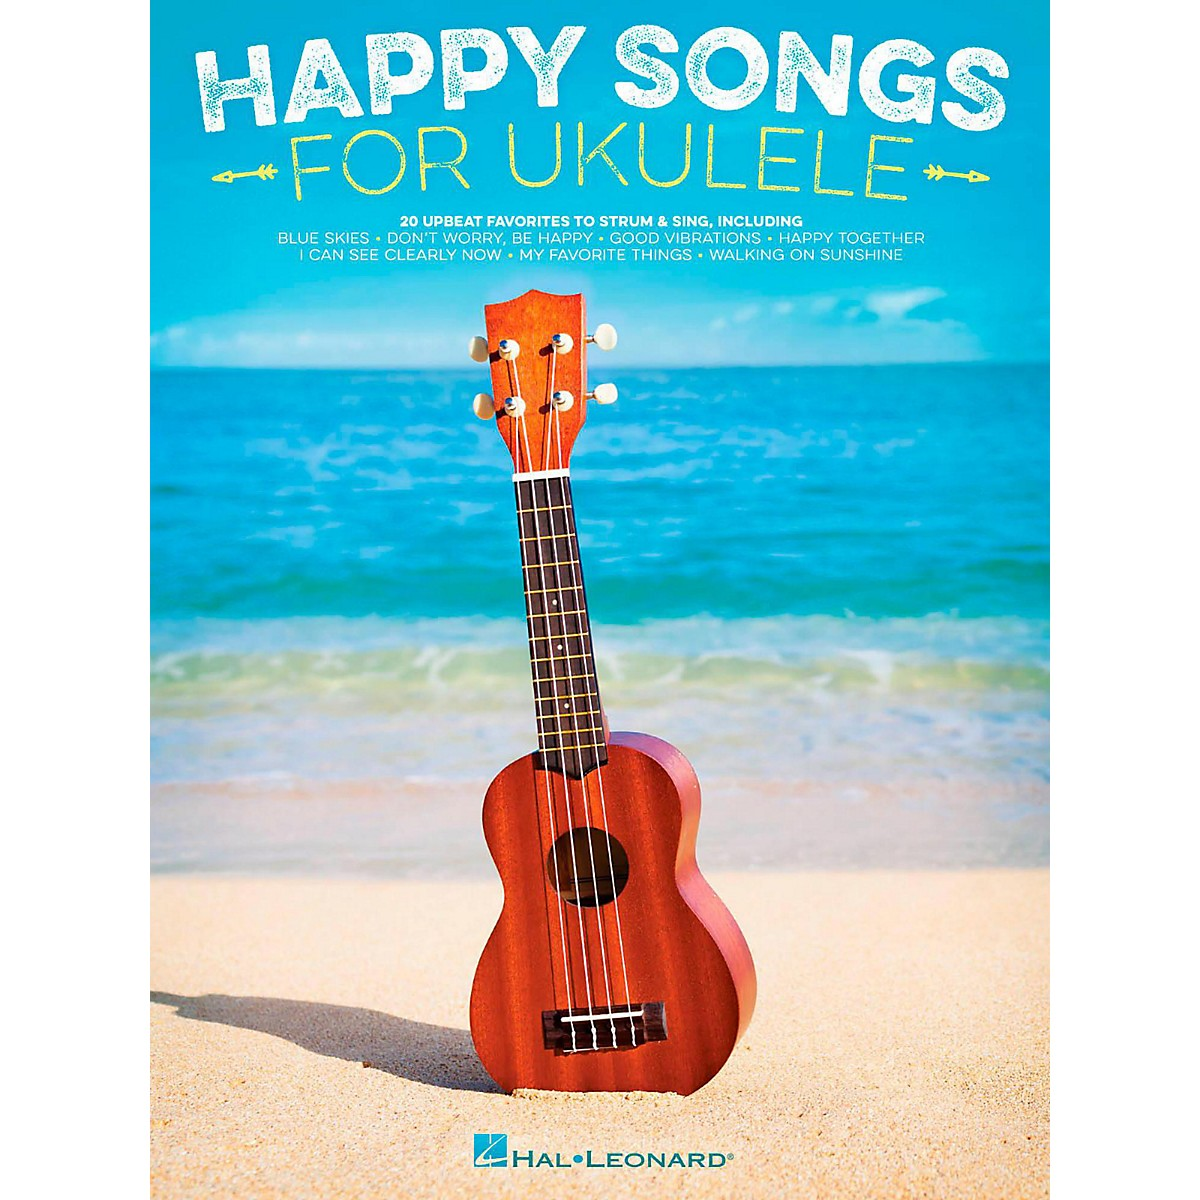 Hal Leonard Happy Songs for Ukulele - 20 Upbeat Favorites to Strum & Sing